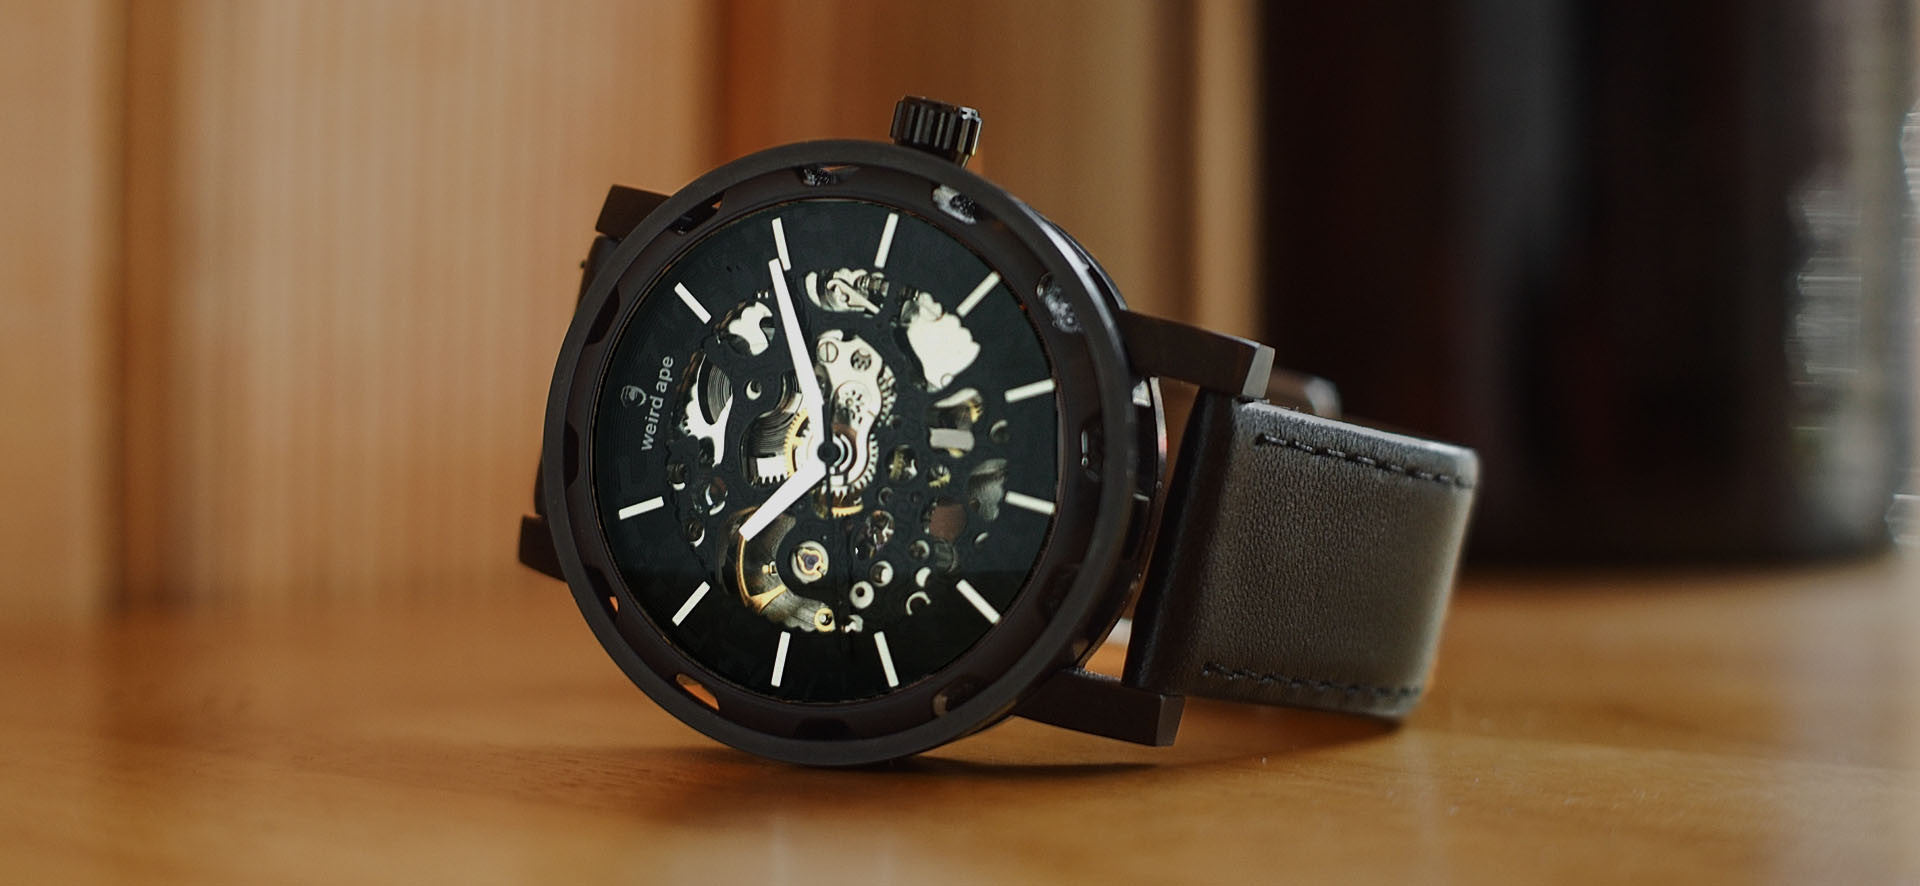 Black skeleton watch with leather black strap in a lifestyle image